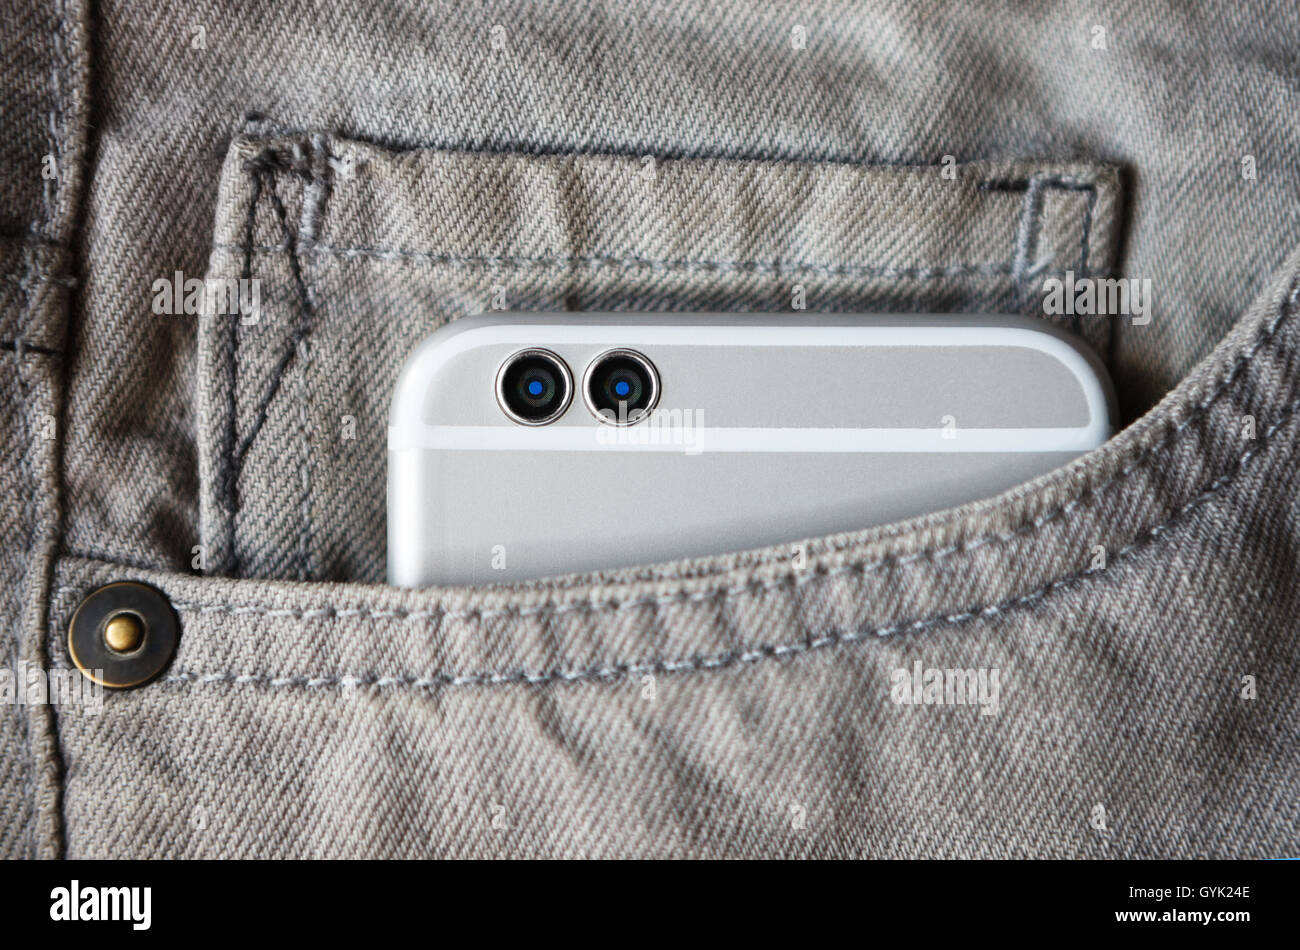 Modern 2d camera smart phone in jeans pocket. Silver gadget, grey trousers, horizontal orientation - Stock Image